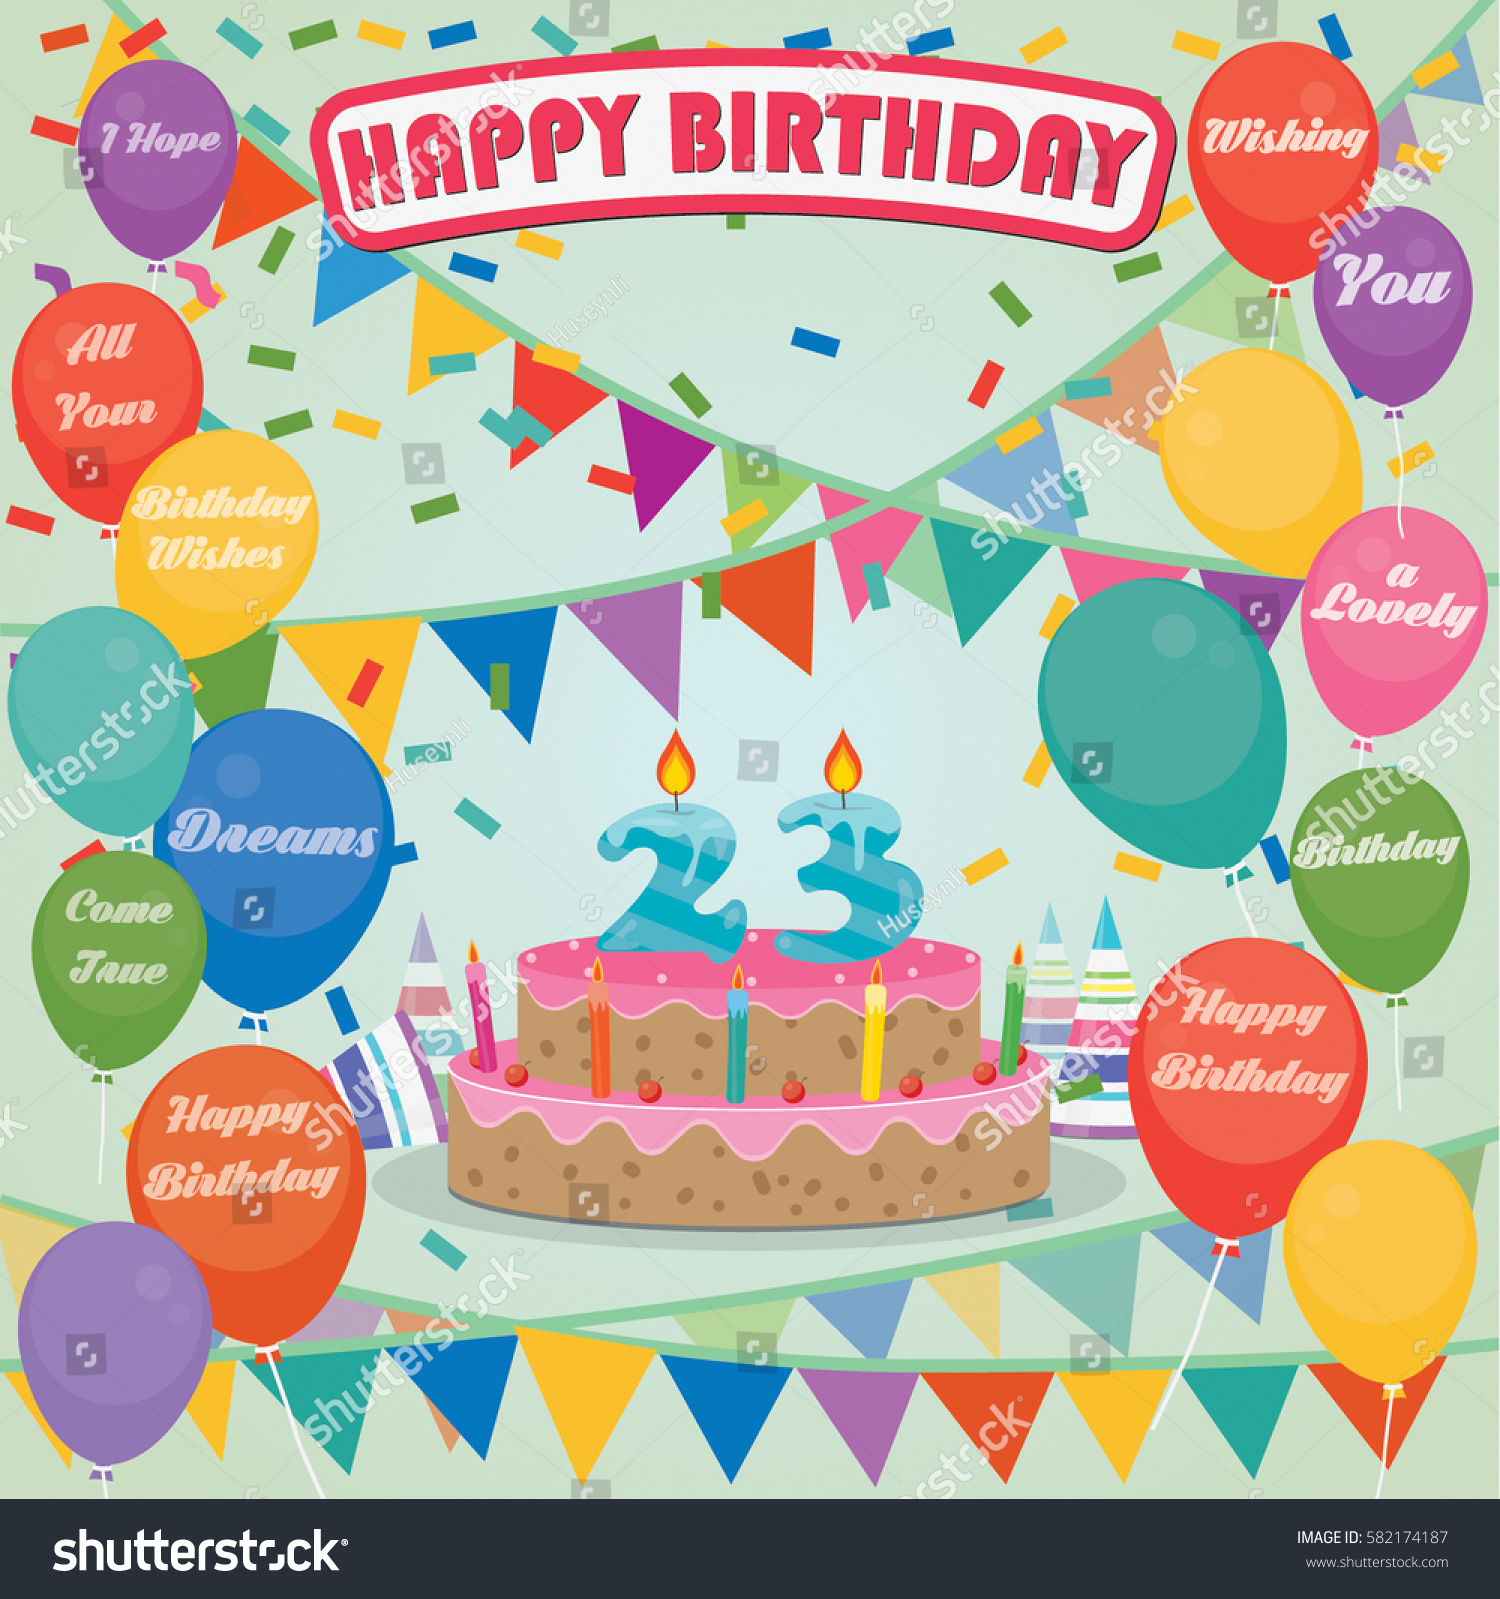 23 th birthday cake decoration background flat stock vector 23 th birthday cake decoration background flat stock vector 582174187 shutterstock altavistaventures Image collections